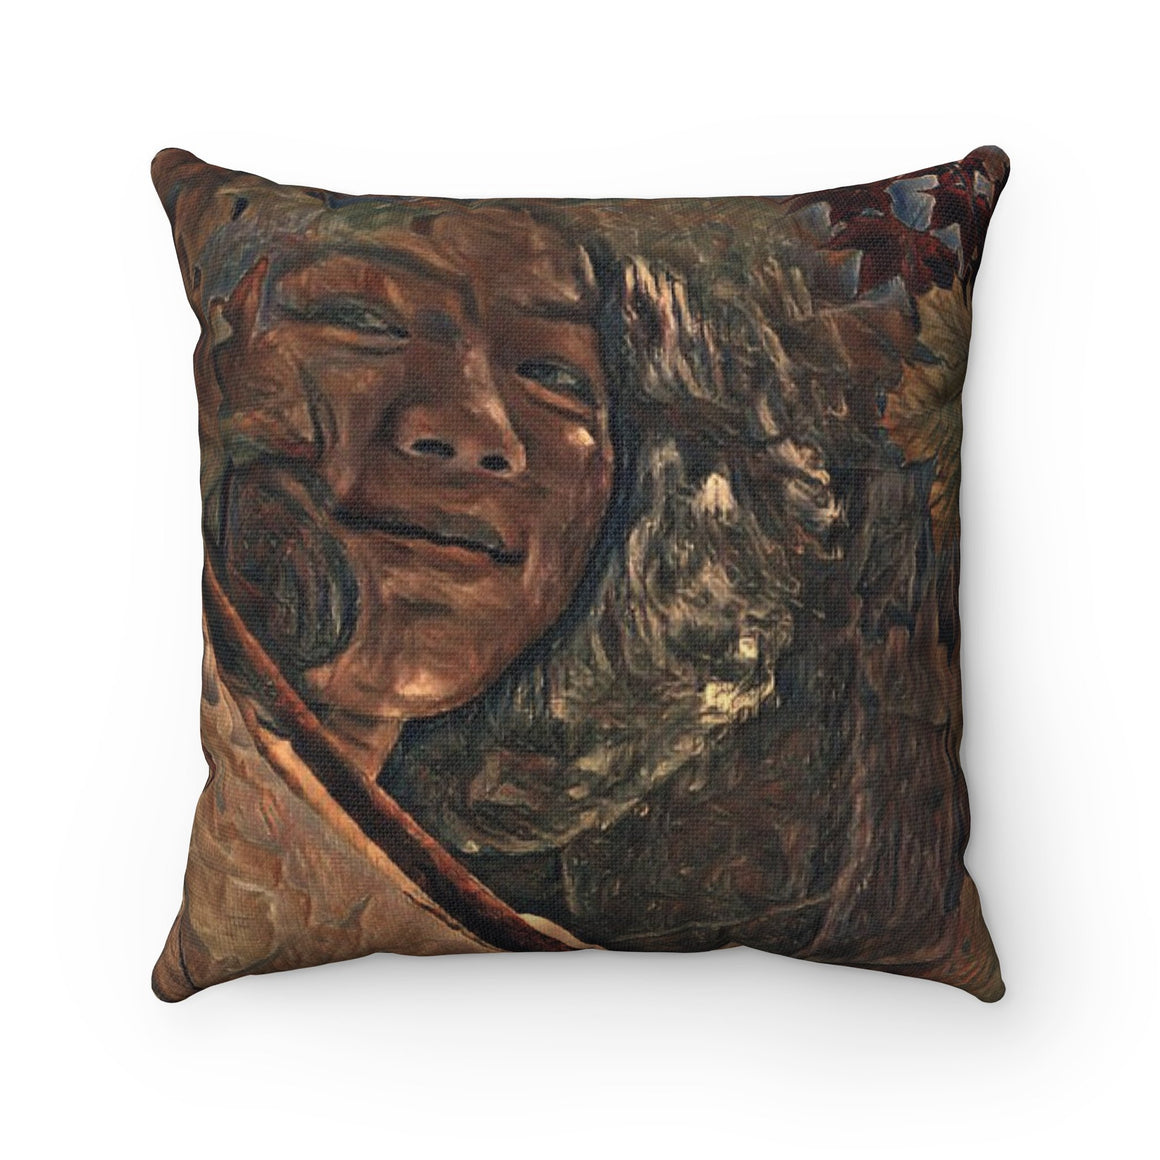 Levi Thang Vintage Face Design Q Spun Polyester Square Pillow Case